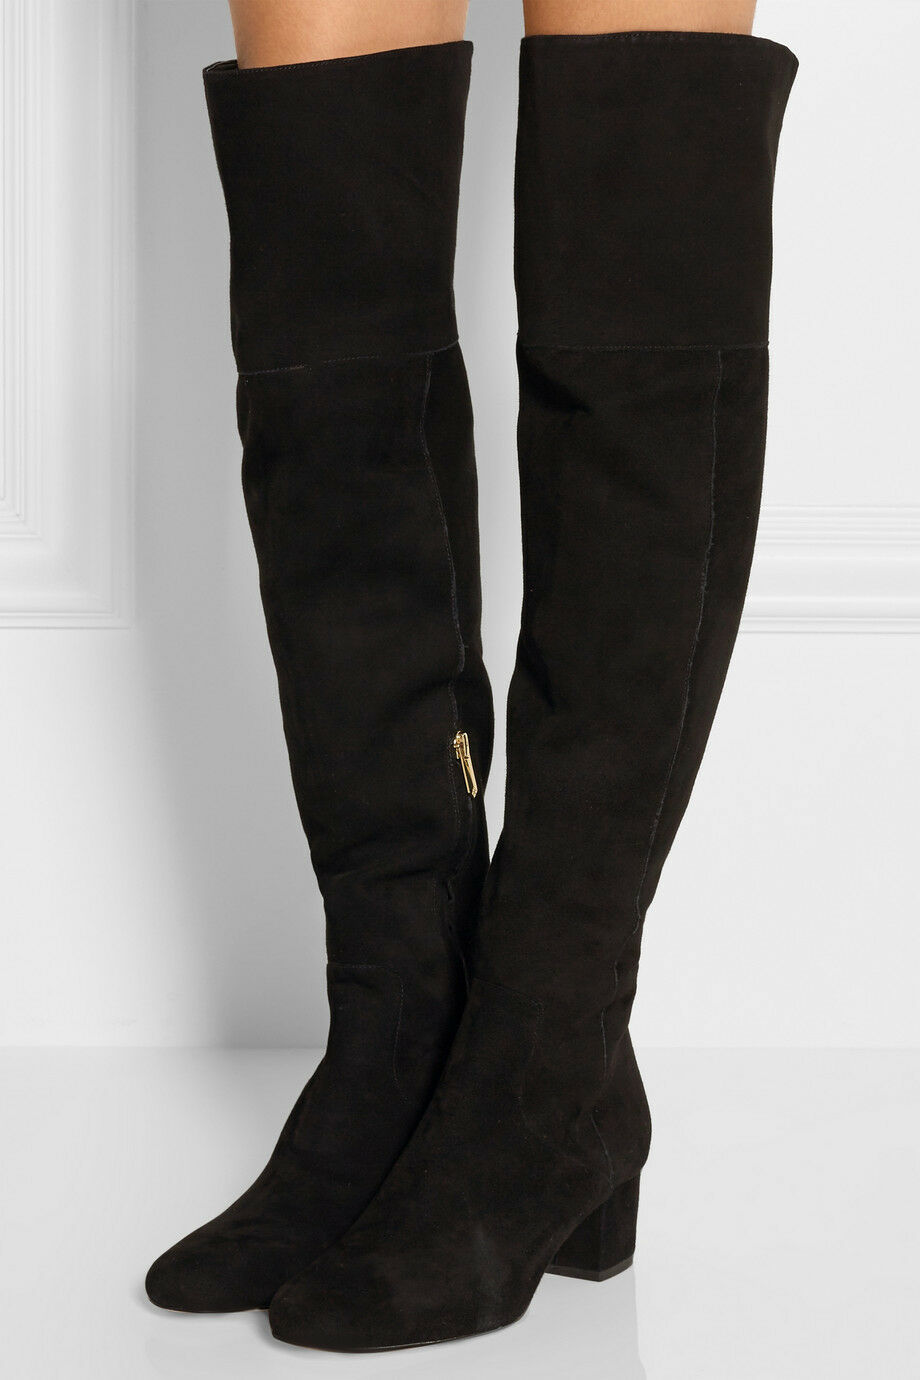 NWB Sam Edelman Elina Over the Knee Boot Black Suede - Women's Size 7.5